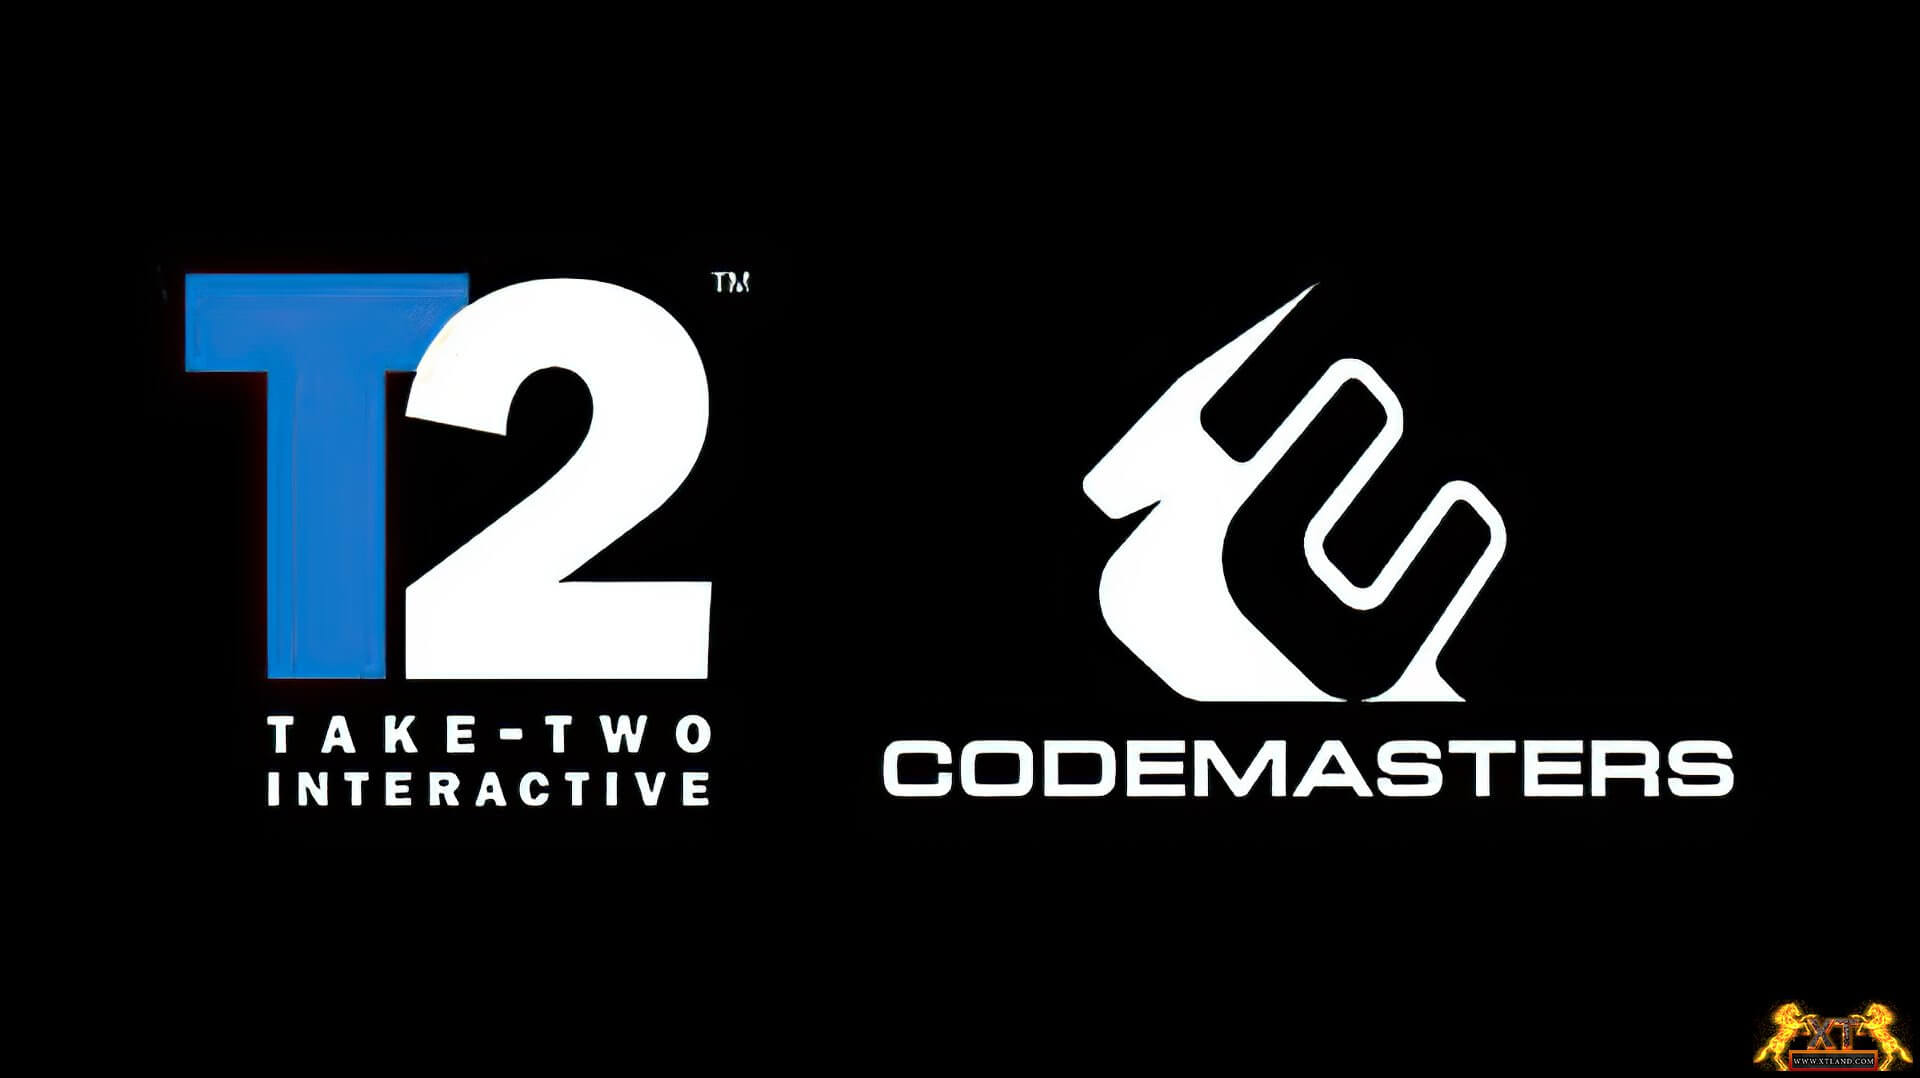 Take-Two buys Codemasters For More Than $700 million| Sale to Complete in Early 2021